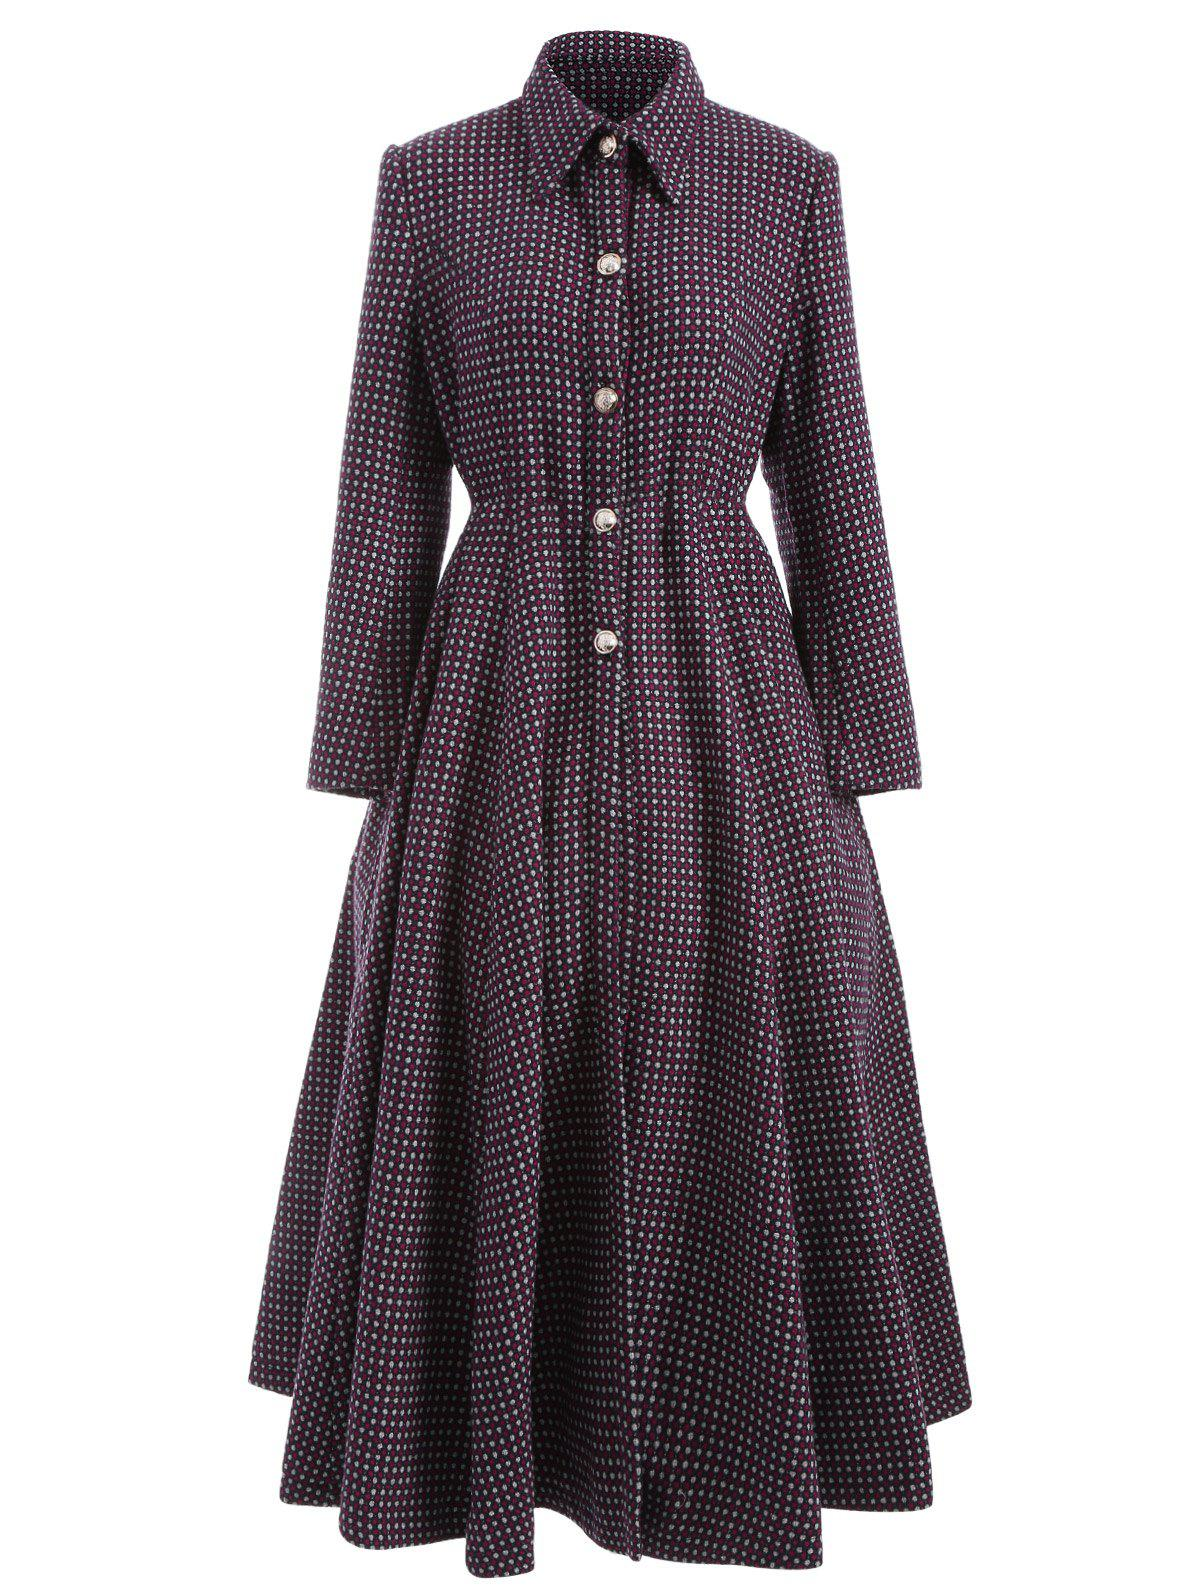 Buy Polka Dot Woolen Skirted A Line Long Maxi Coat